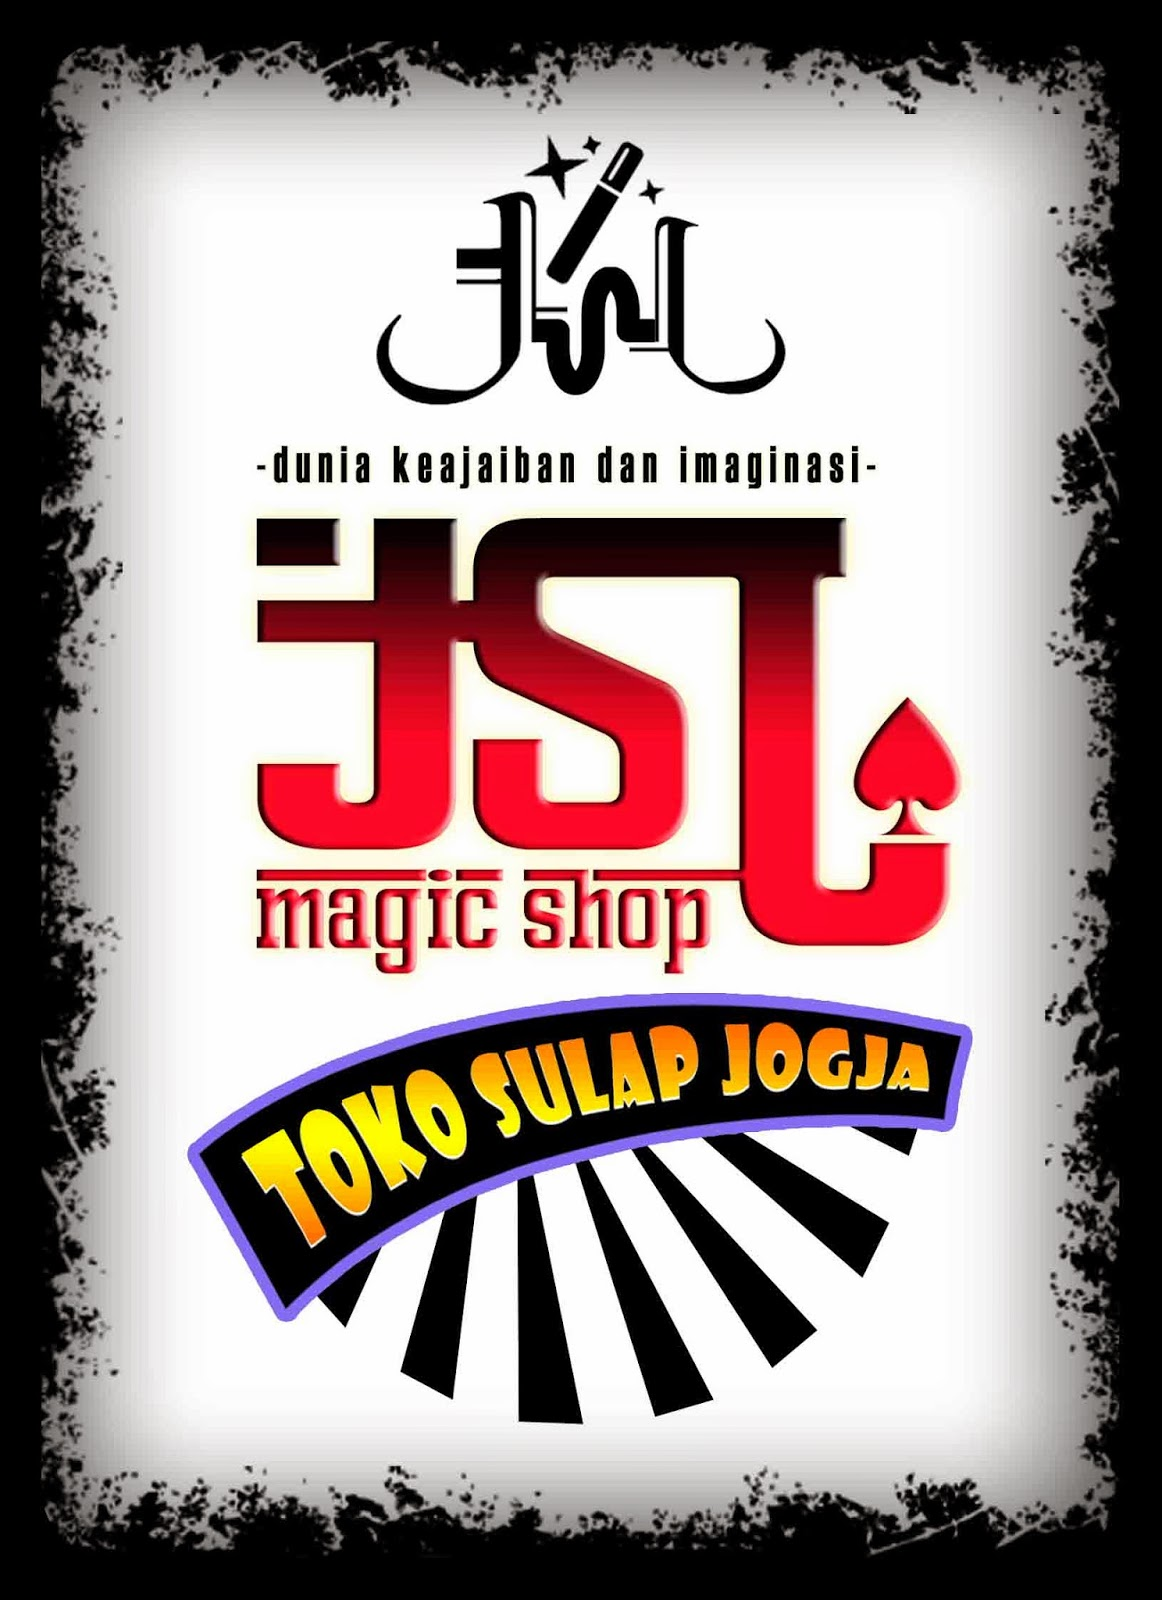 TOKO SULAP JOGJA TOP HAT MAGIC